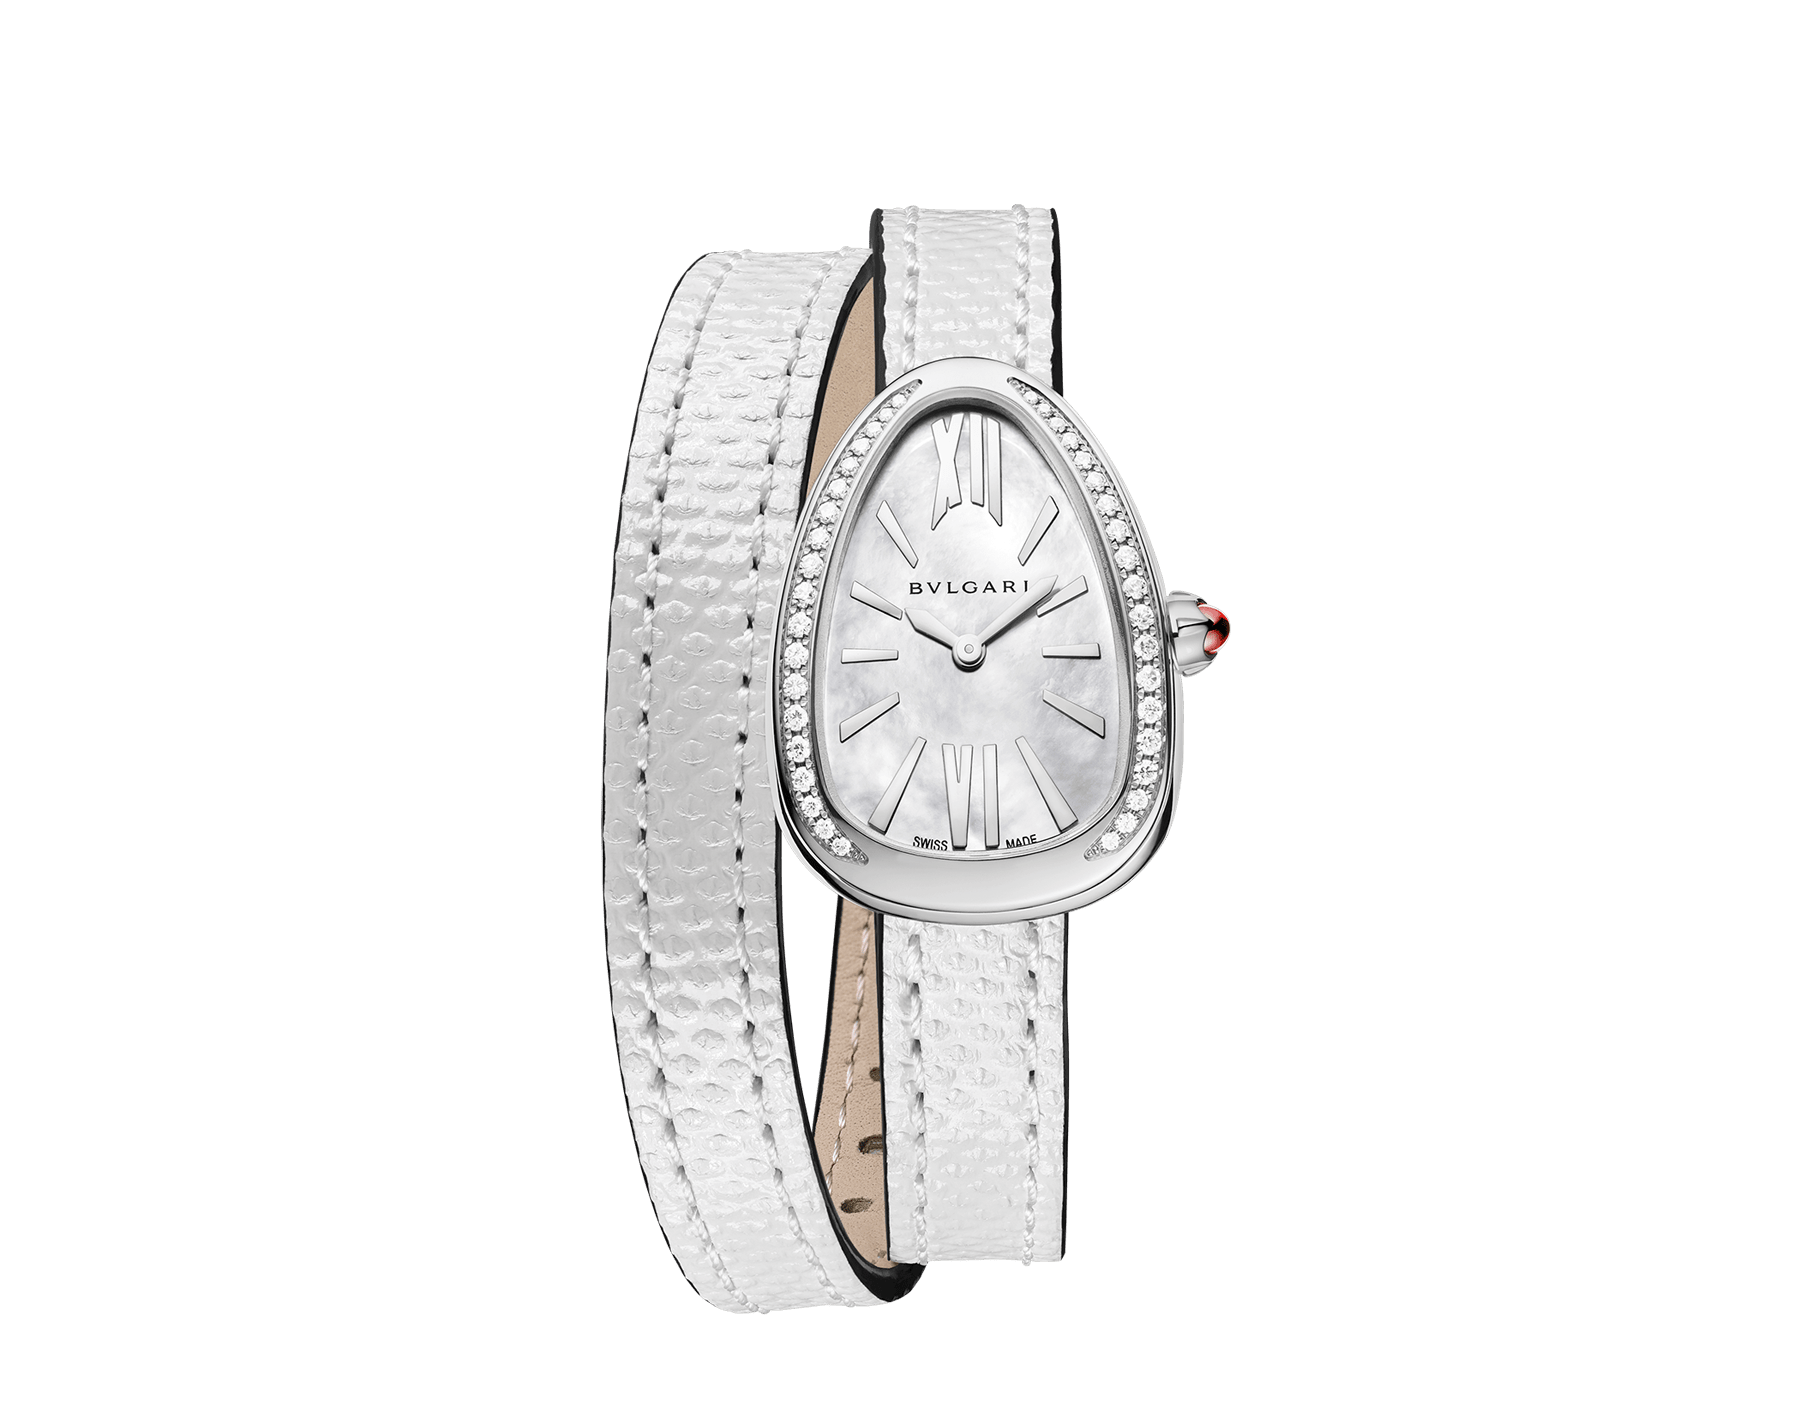 Serpenti watch with stainless steel case set with diamonds, white mother-of-pearl dial and interchangeable double spiral bracelet in white karung leather. 102781 image 1